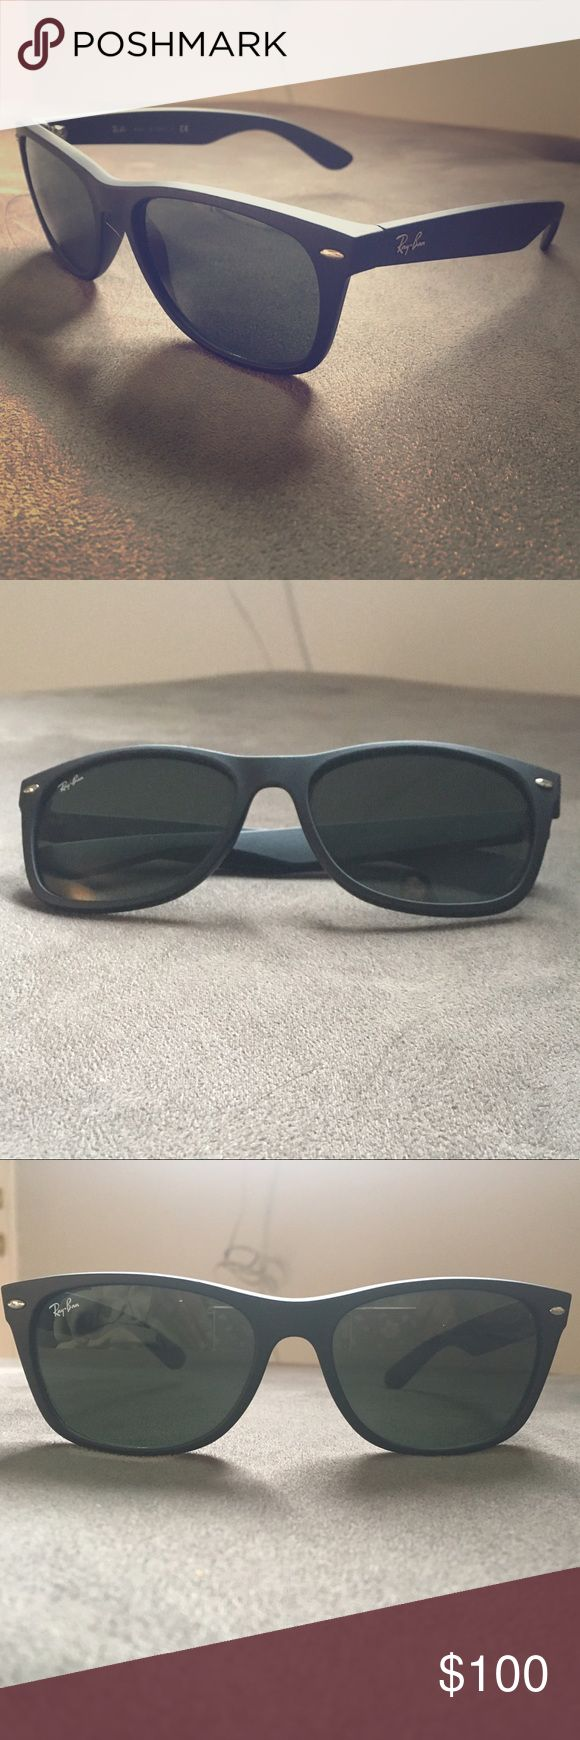 LIKE NEW Ray-Ban Wayfarer Black Matte Sunglasses‼️ LIKE NEW Ray-Ban Original Wayfarer Classic Black Matte Sunglasses ‼️ Model code: RB2132 622 52-18 The Ray-Ban New Wayfarer Matte guides the trend in everything that comes in matte. Using the same shape as the Original Wayfarer Sunglasses, New Wayfarer Matte sunglasses are a smaller interpretation of this infamous style. With an edgy touch and feel, Ray-Ban RB2132 New Wayfarer Matte sunglasses are a must-have.   Frame material: Nylon Shape…